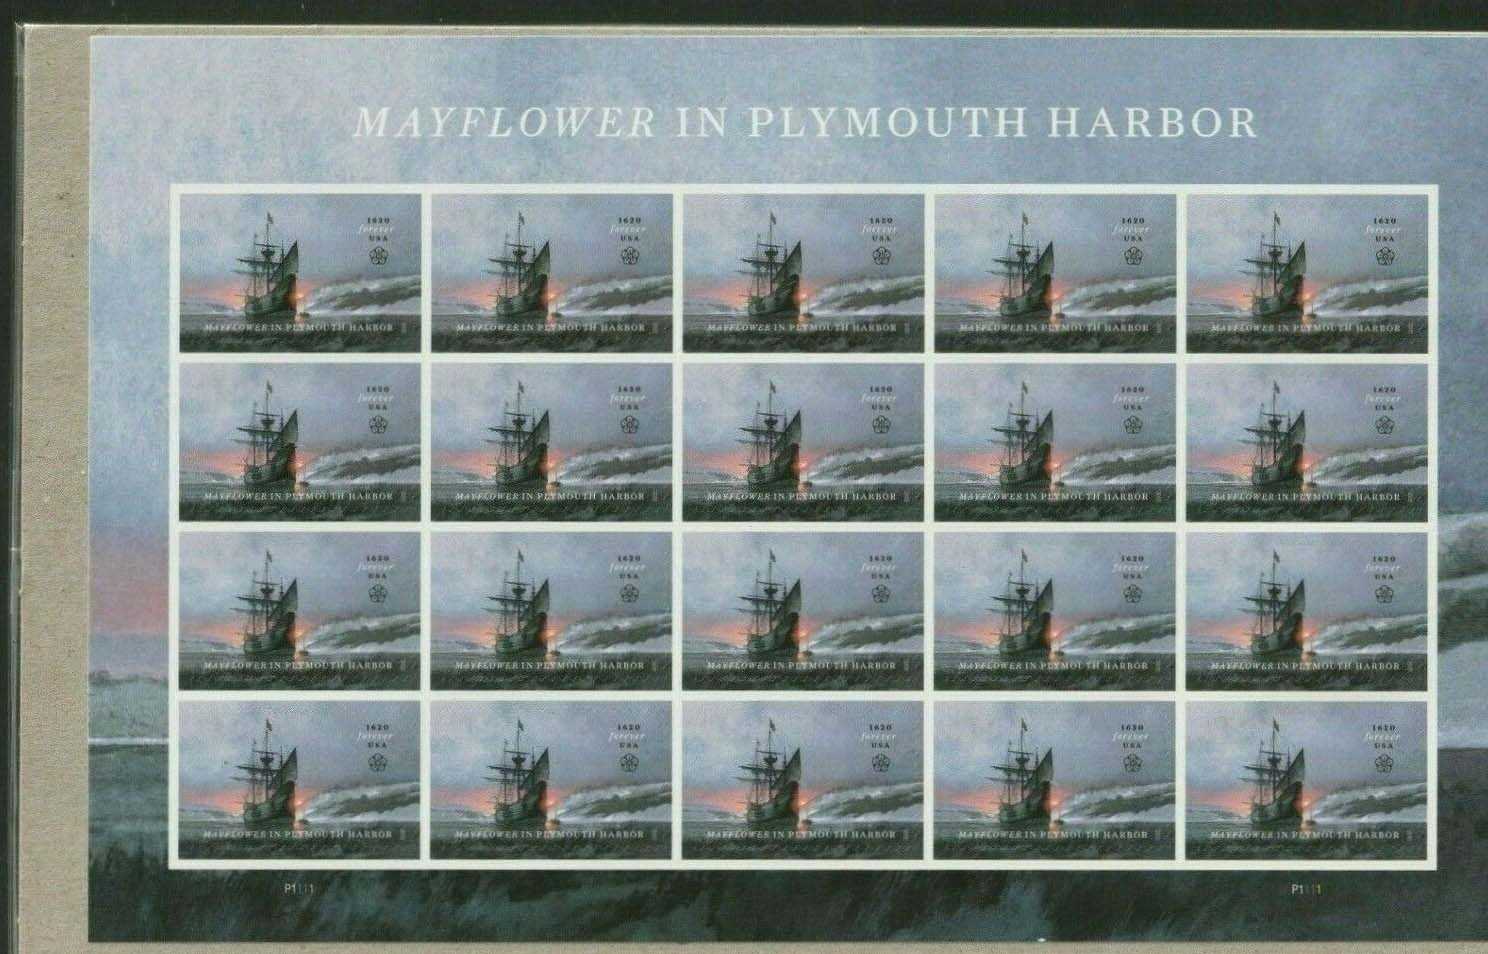 Scott #5524, Forever Sheet of 20, Mayflower in Plymouth Harbor